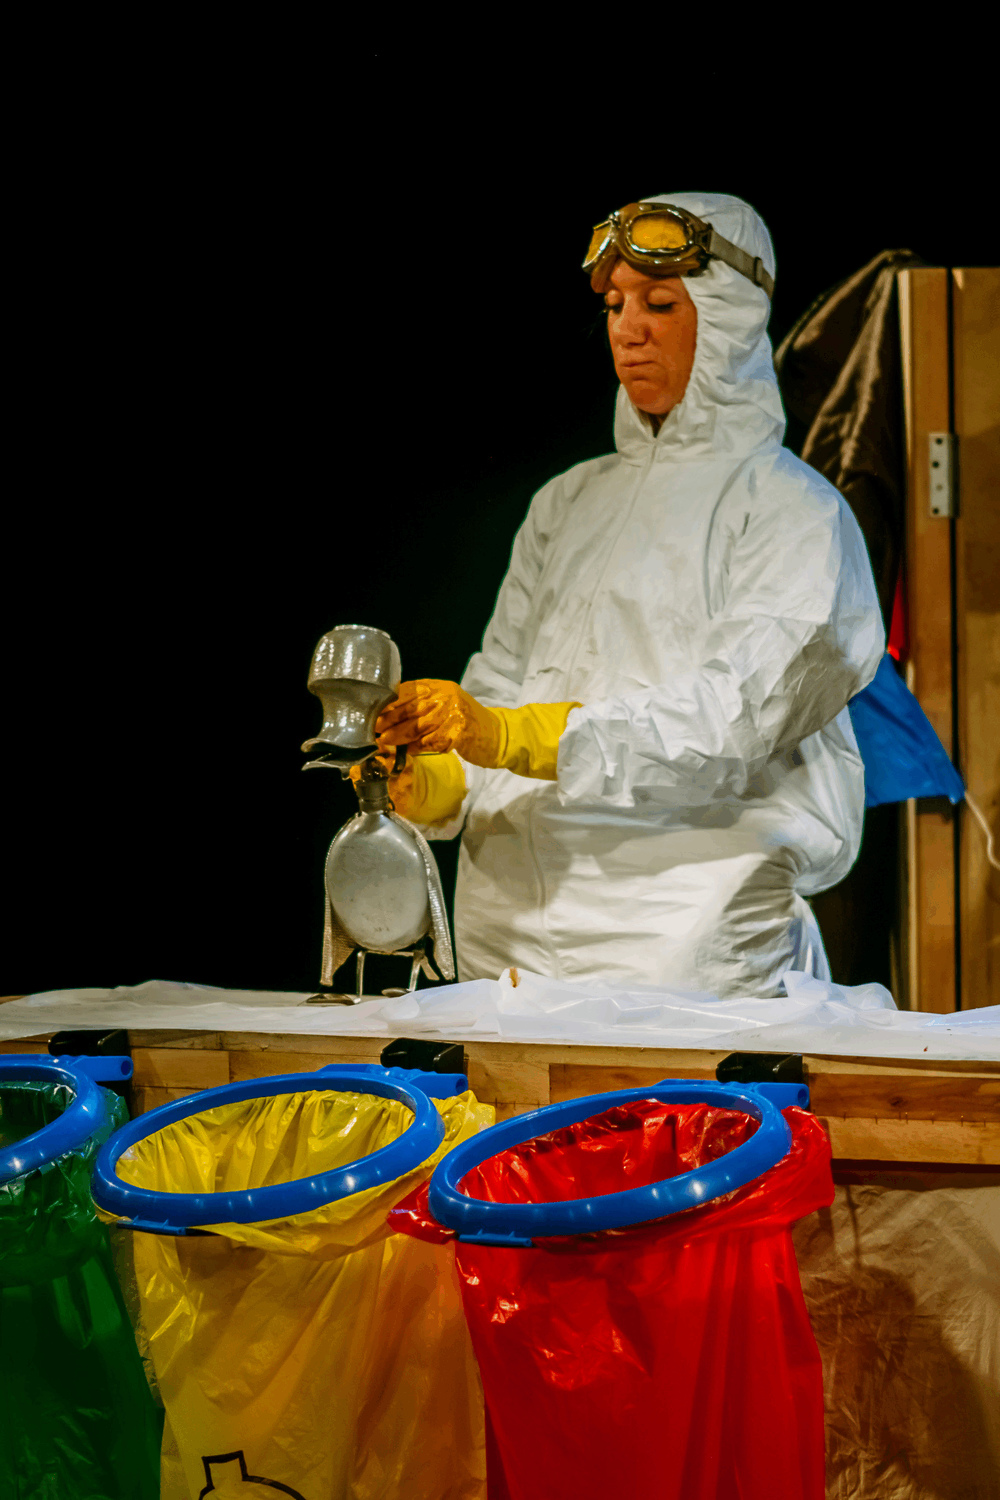 Performer in white hazard suit, goggles and yellow gloves animates a duck made out of a tea pot, jug and spoons